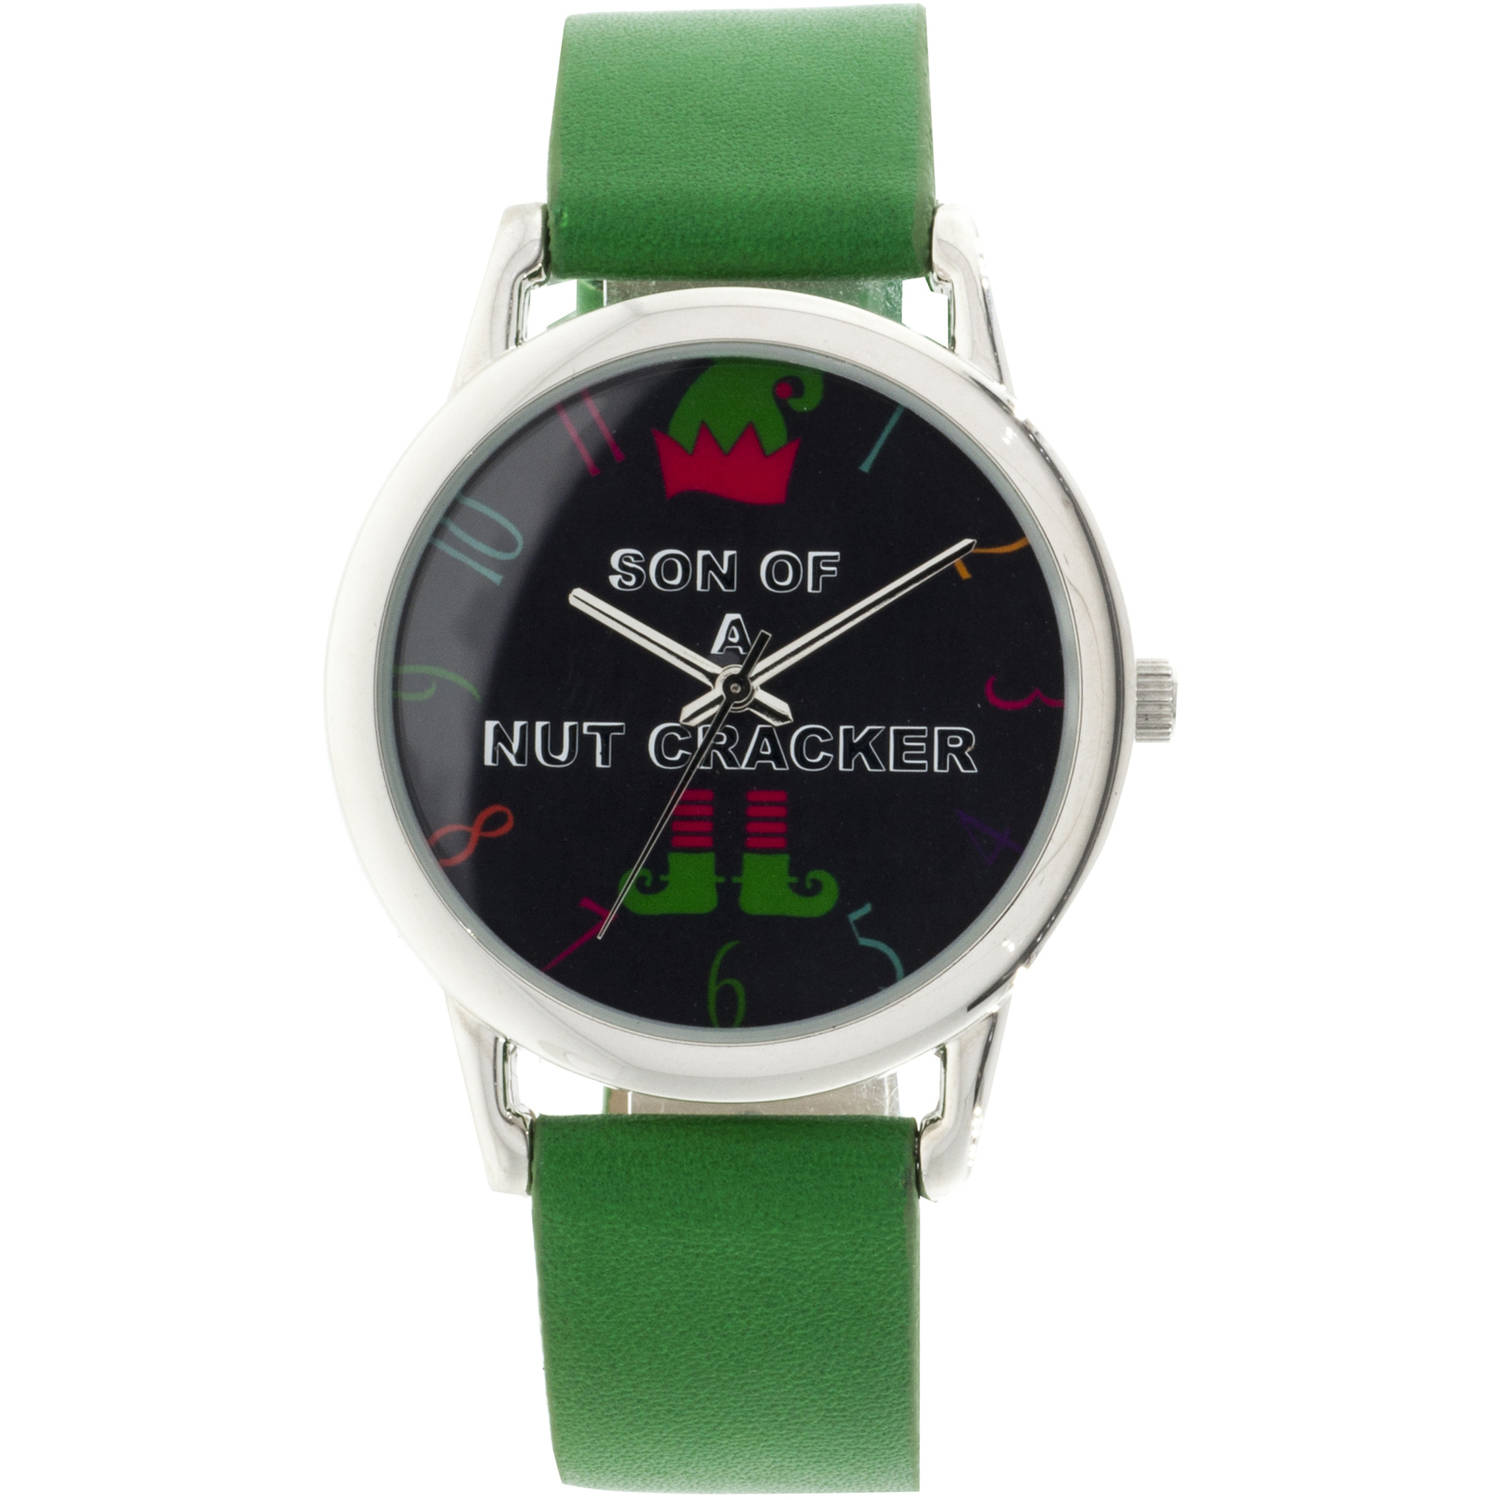 """Son of a Nutcracker""Round Silver Ugly Christmas Watch,Green Strap"